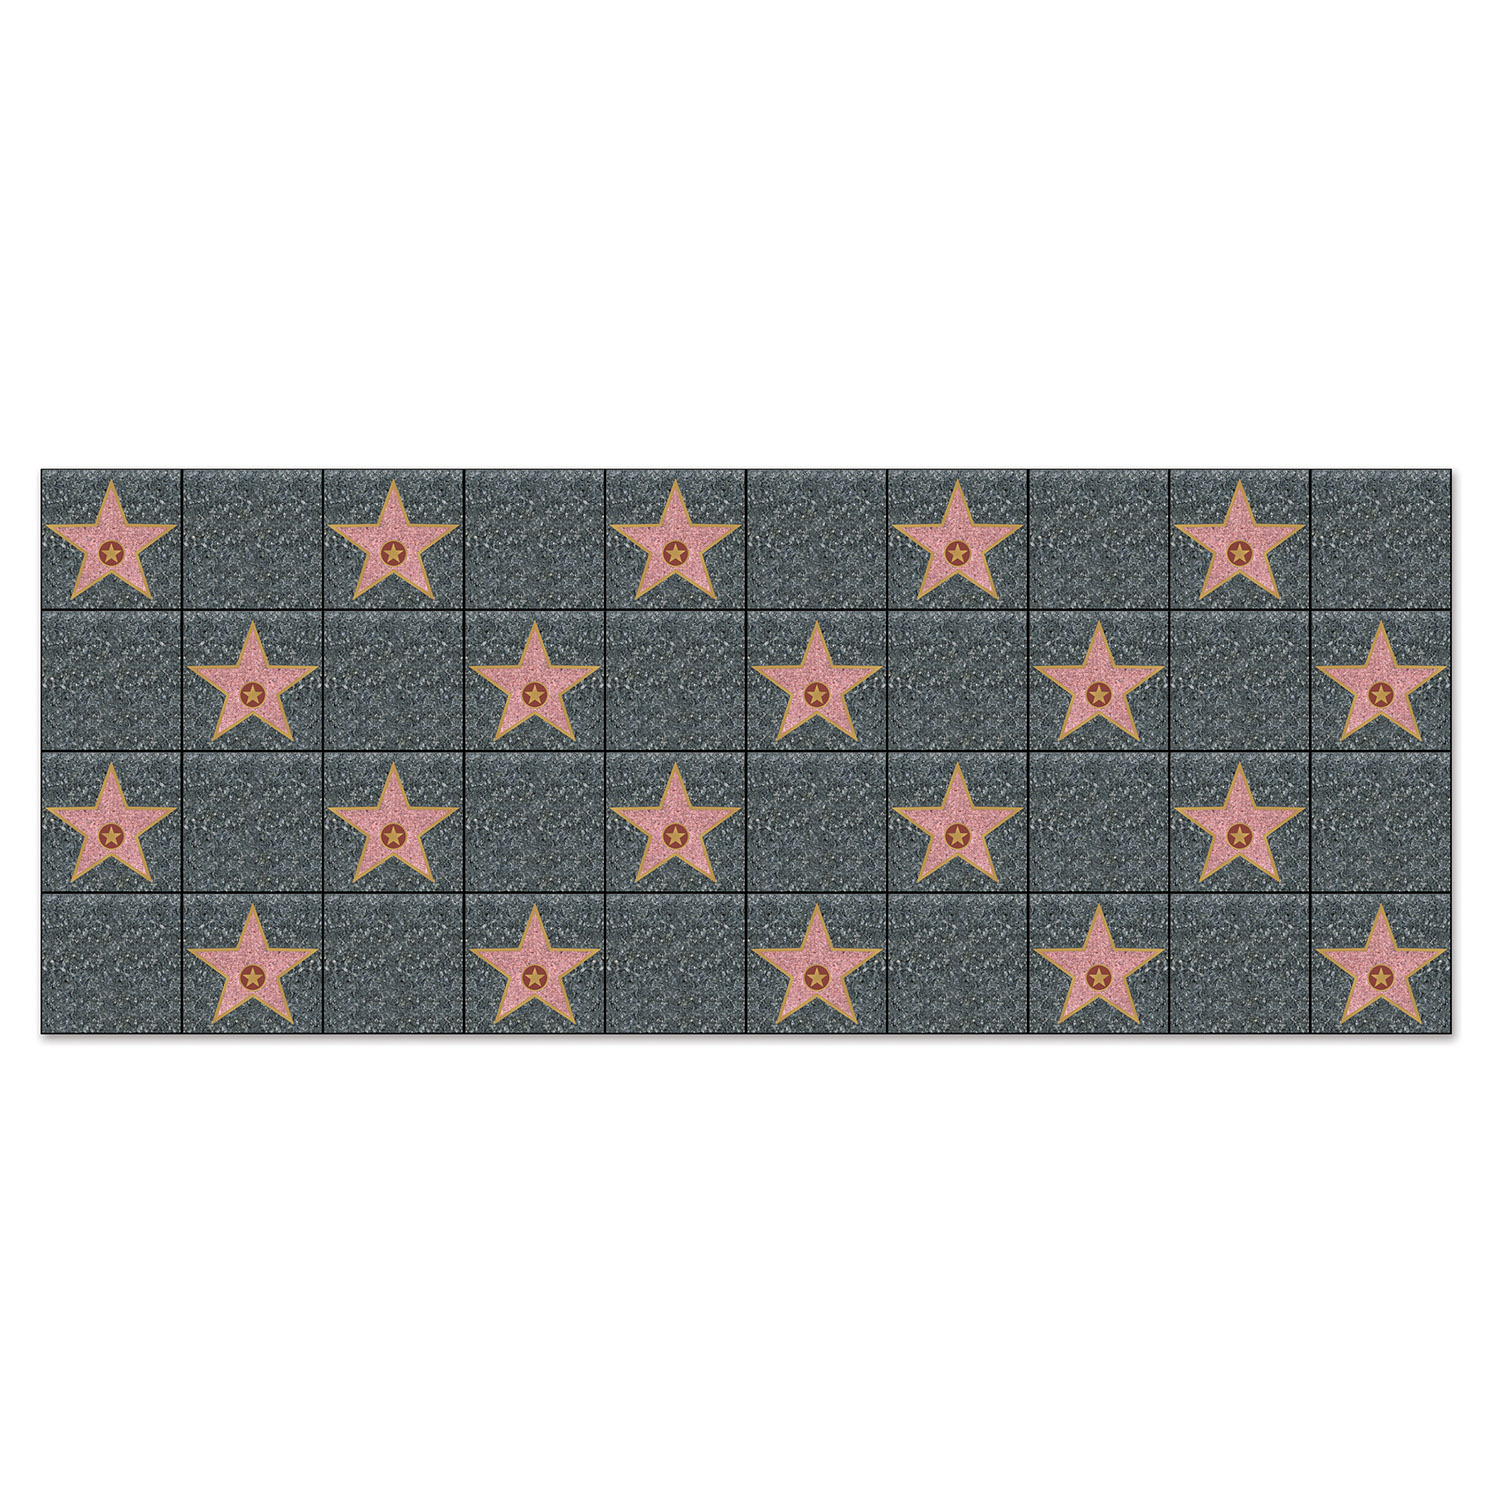 """Star"" Backdrop with a squares of gray and pattern of pink stars printed on thin plastic material."